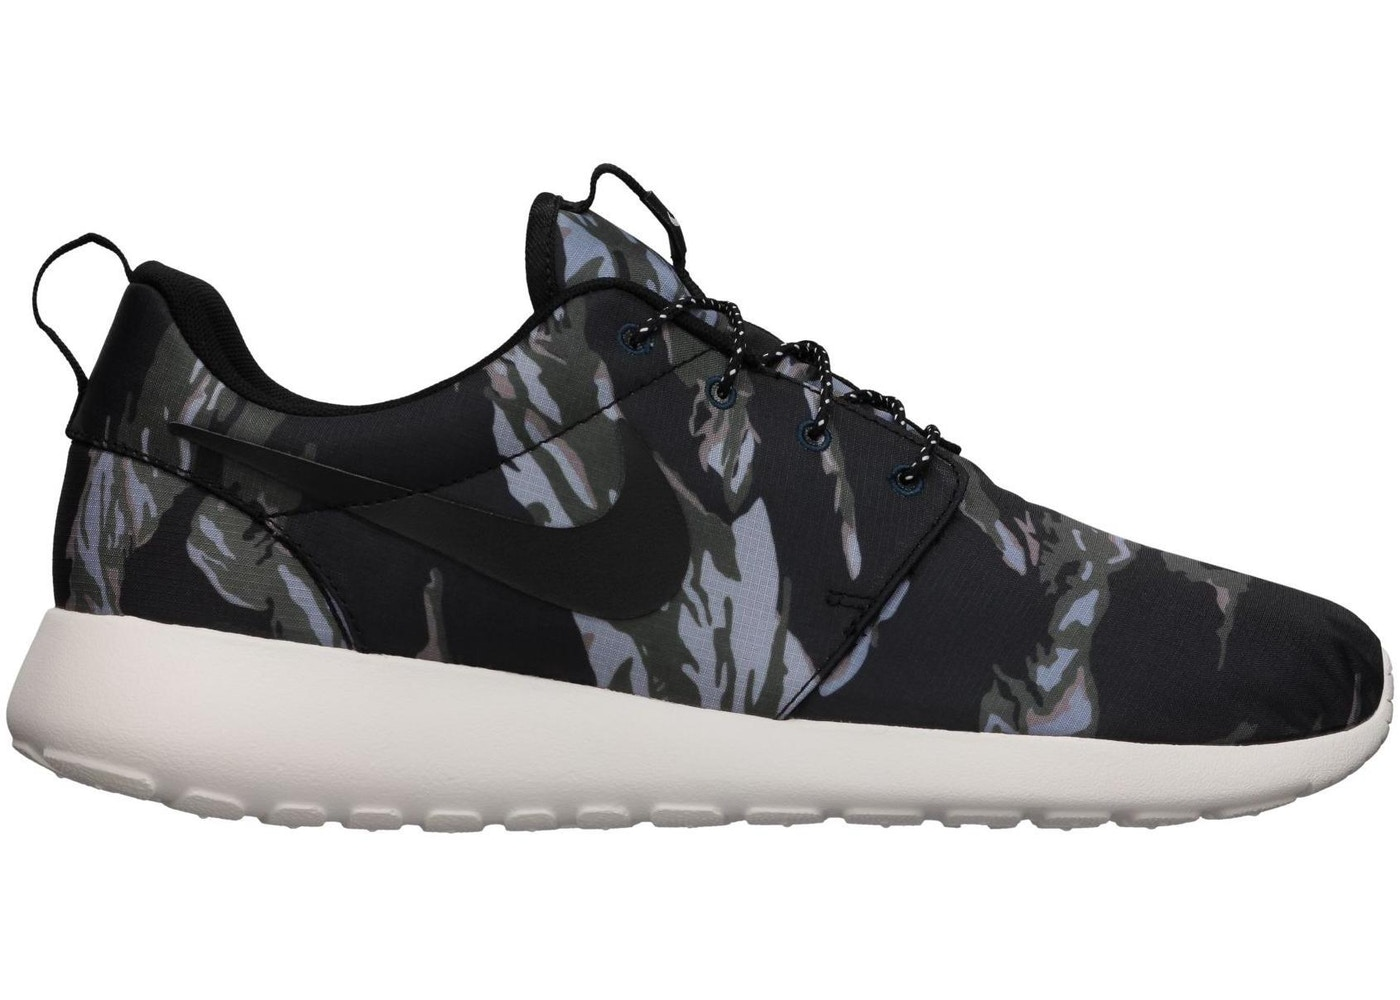 963e614671 Nike Roshe Run Black Tiger Camo - 555445-001